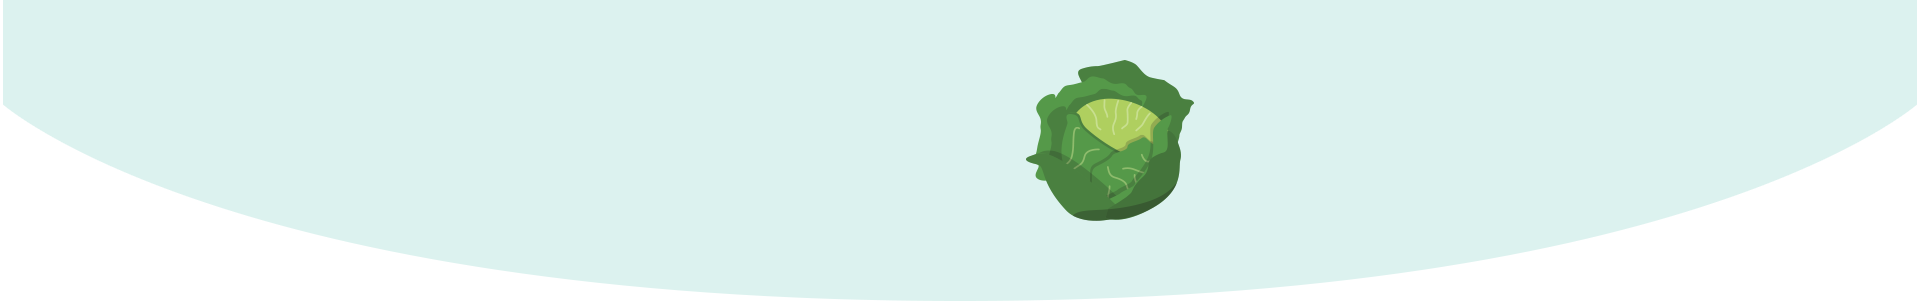 baby size of cabbage week 30